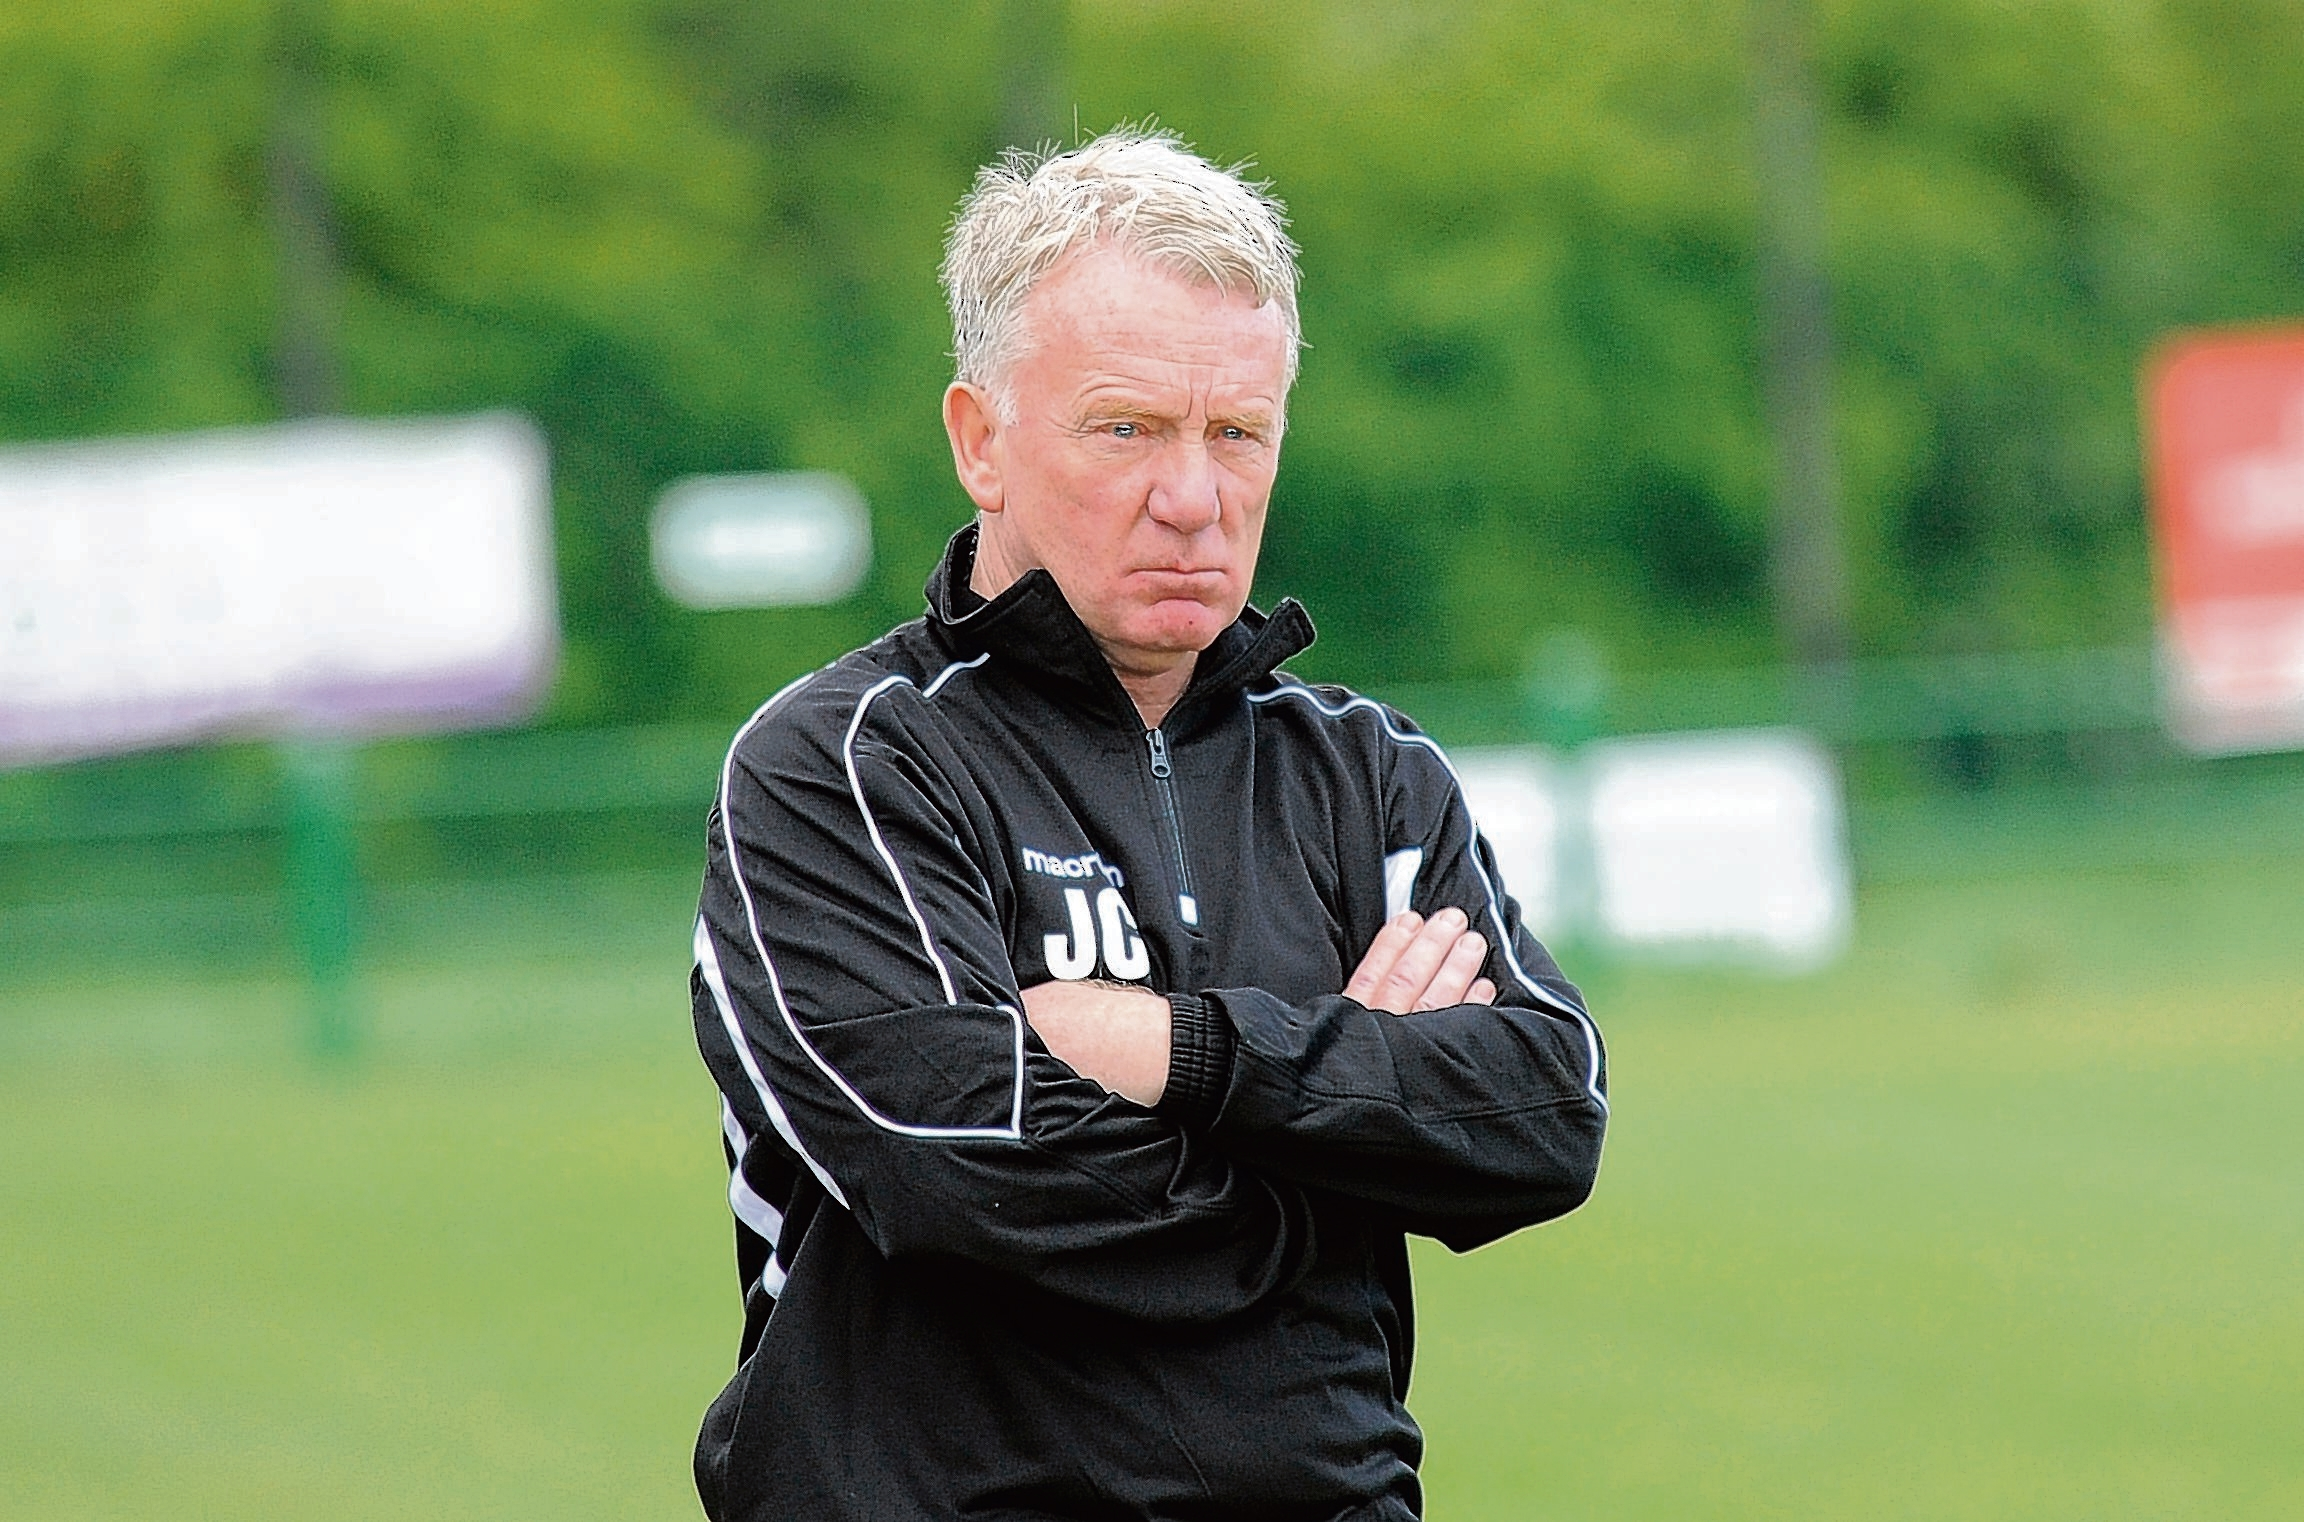 Fully focused - East Thurrock United manager John Coventry